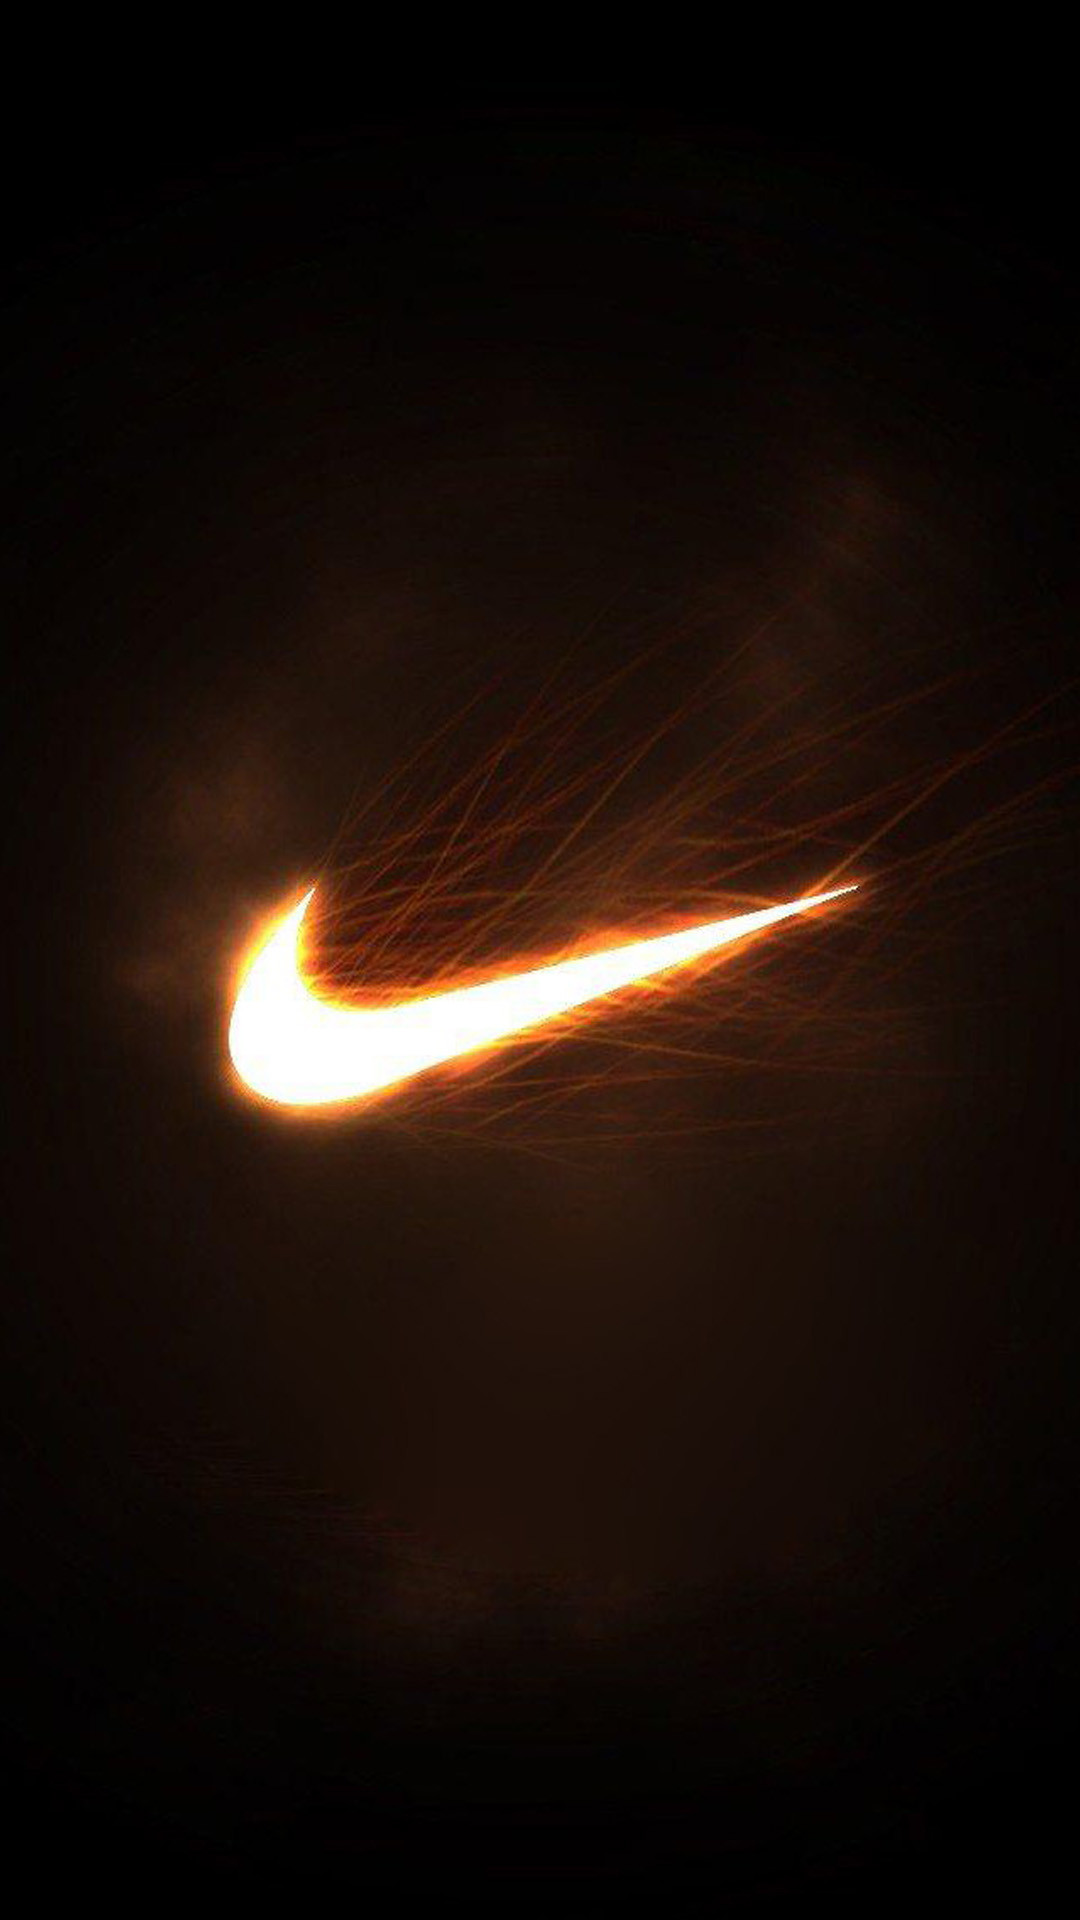 1080x1920 Nike LOGO 07 S4 Wallpapers, Samsung Galaxy S4 Wallpapers